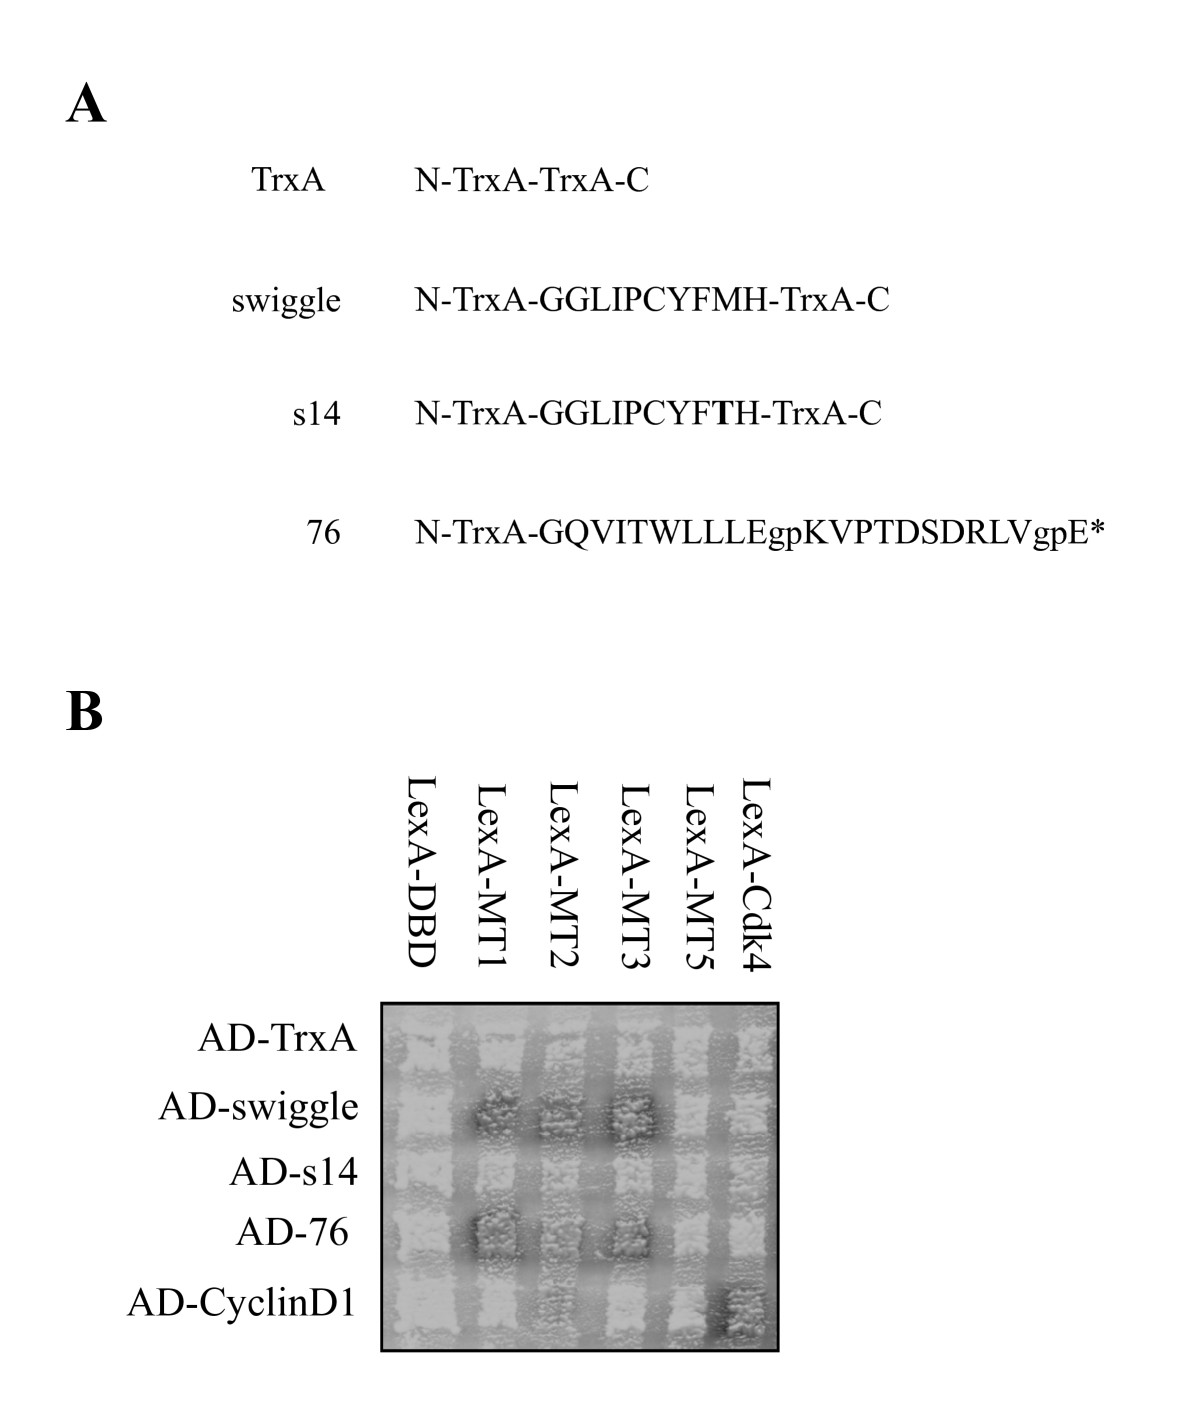 http://static-content.springer.com/image/art%3A10.1186%2F1471-2121-11-58/MediaObjects/12860_2009_Article_503_Fig1_HTML.jpg